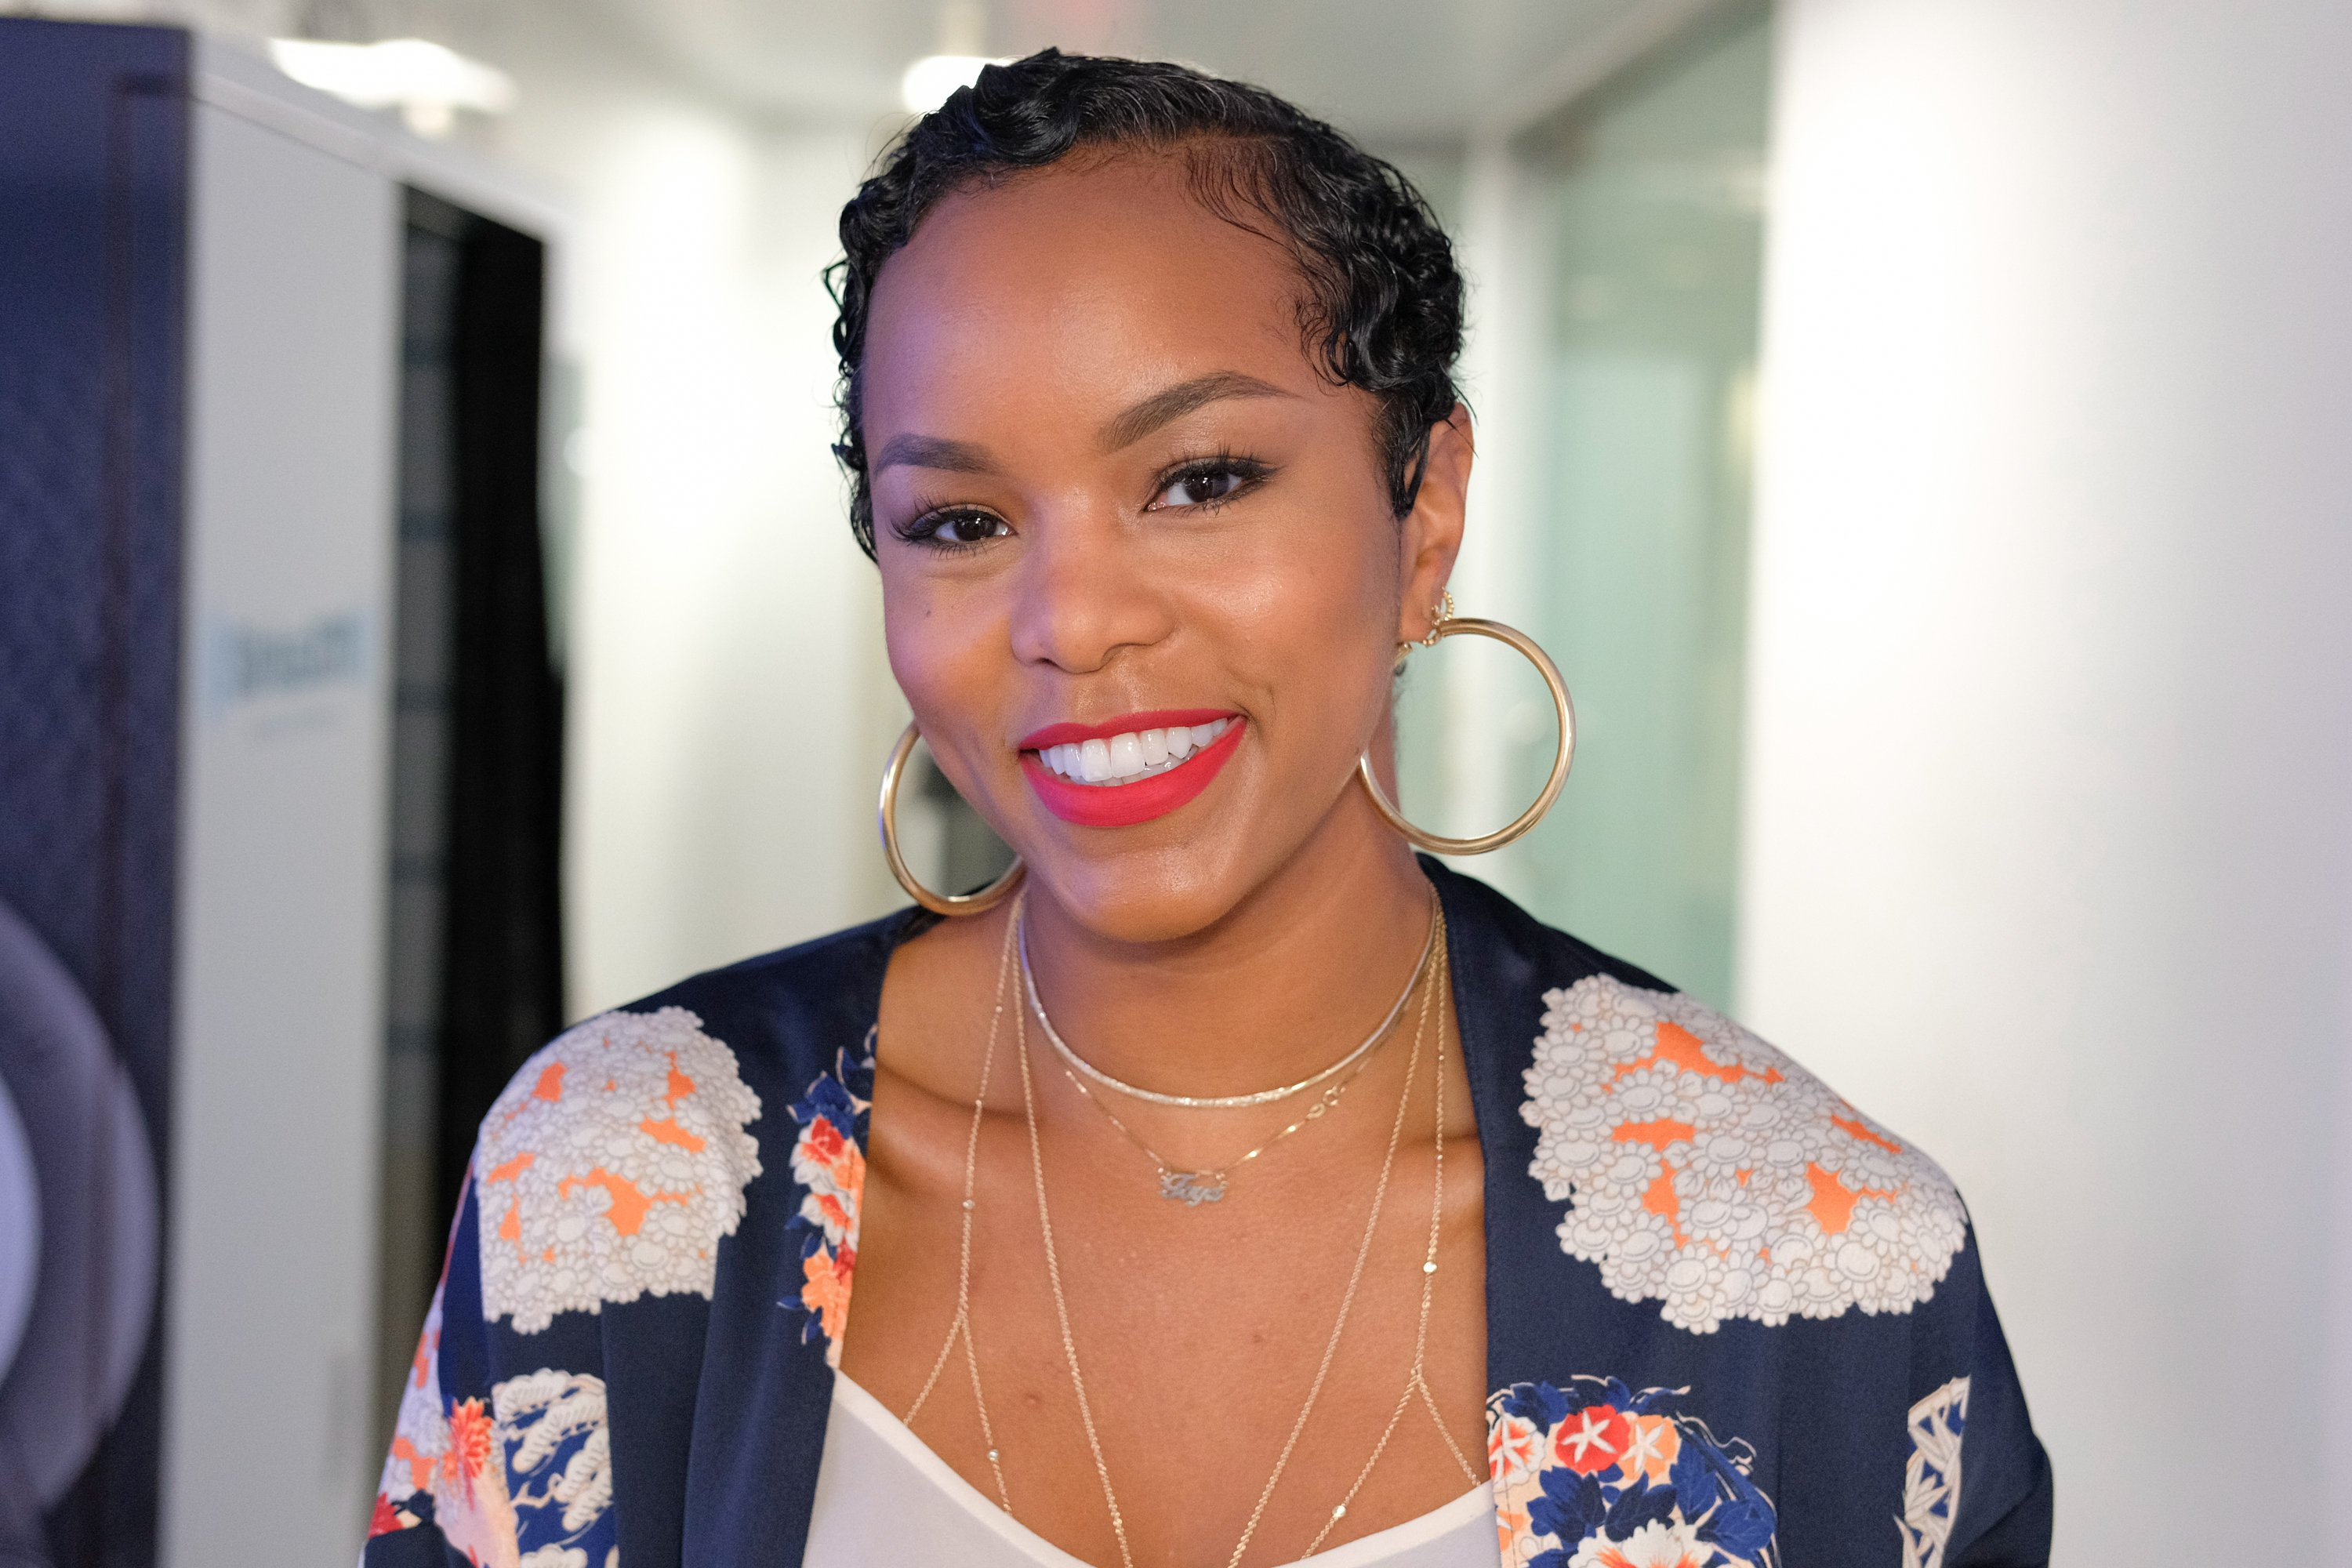 LeToya Luckett pictured at the SiriusXM Studios on April 19, 2017 in New York City.|Source: Getty Images